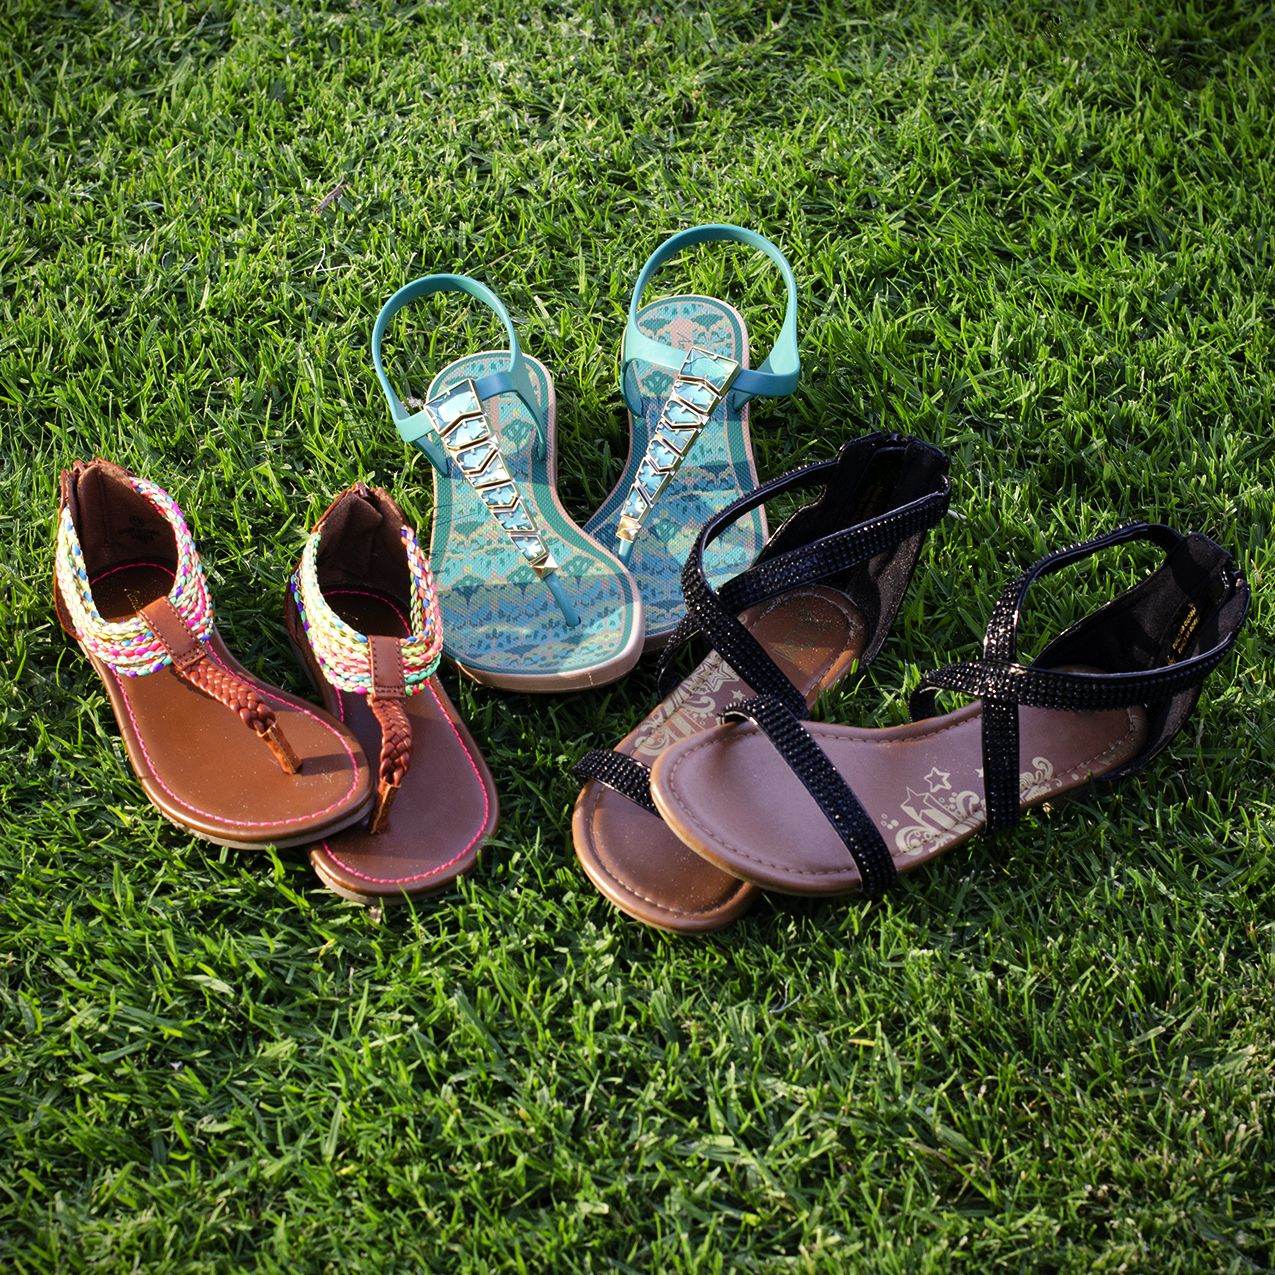 Womens sandals at payless - Stylish Flats From Payless Shoesource For Any Summerstyle Vacation Listflat Sandalswomen